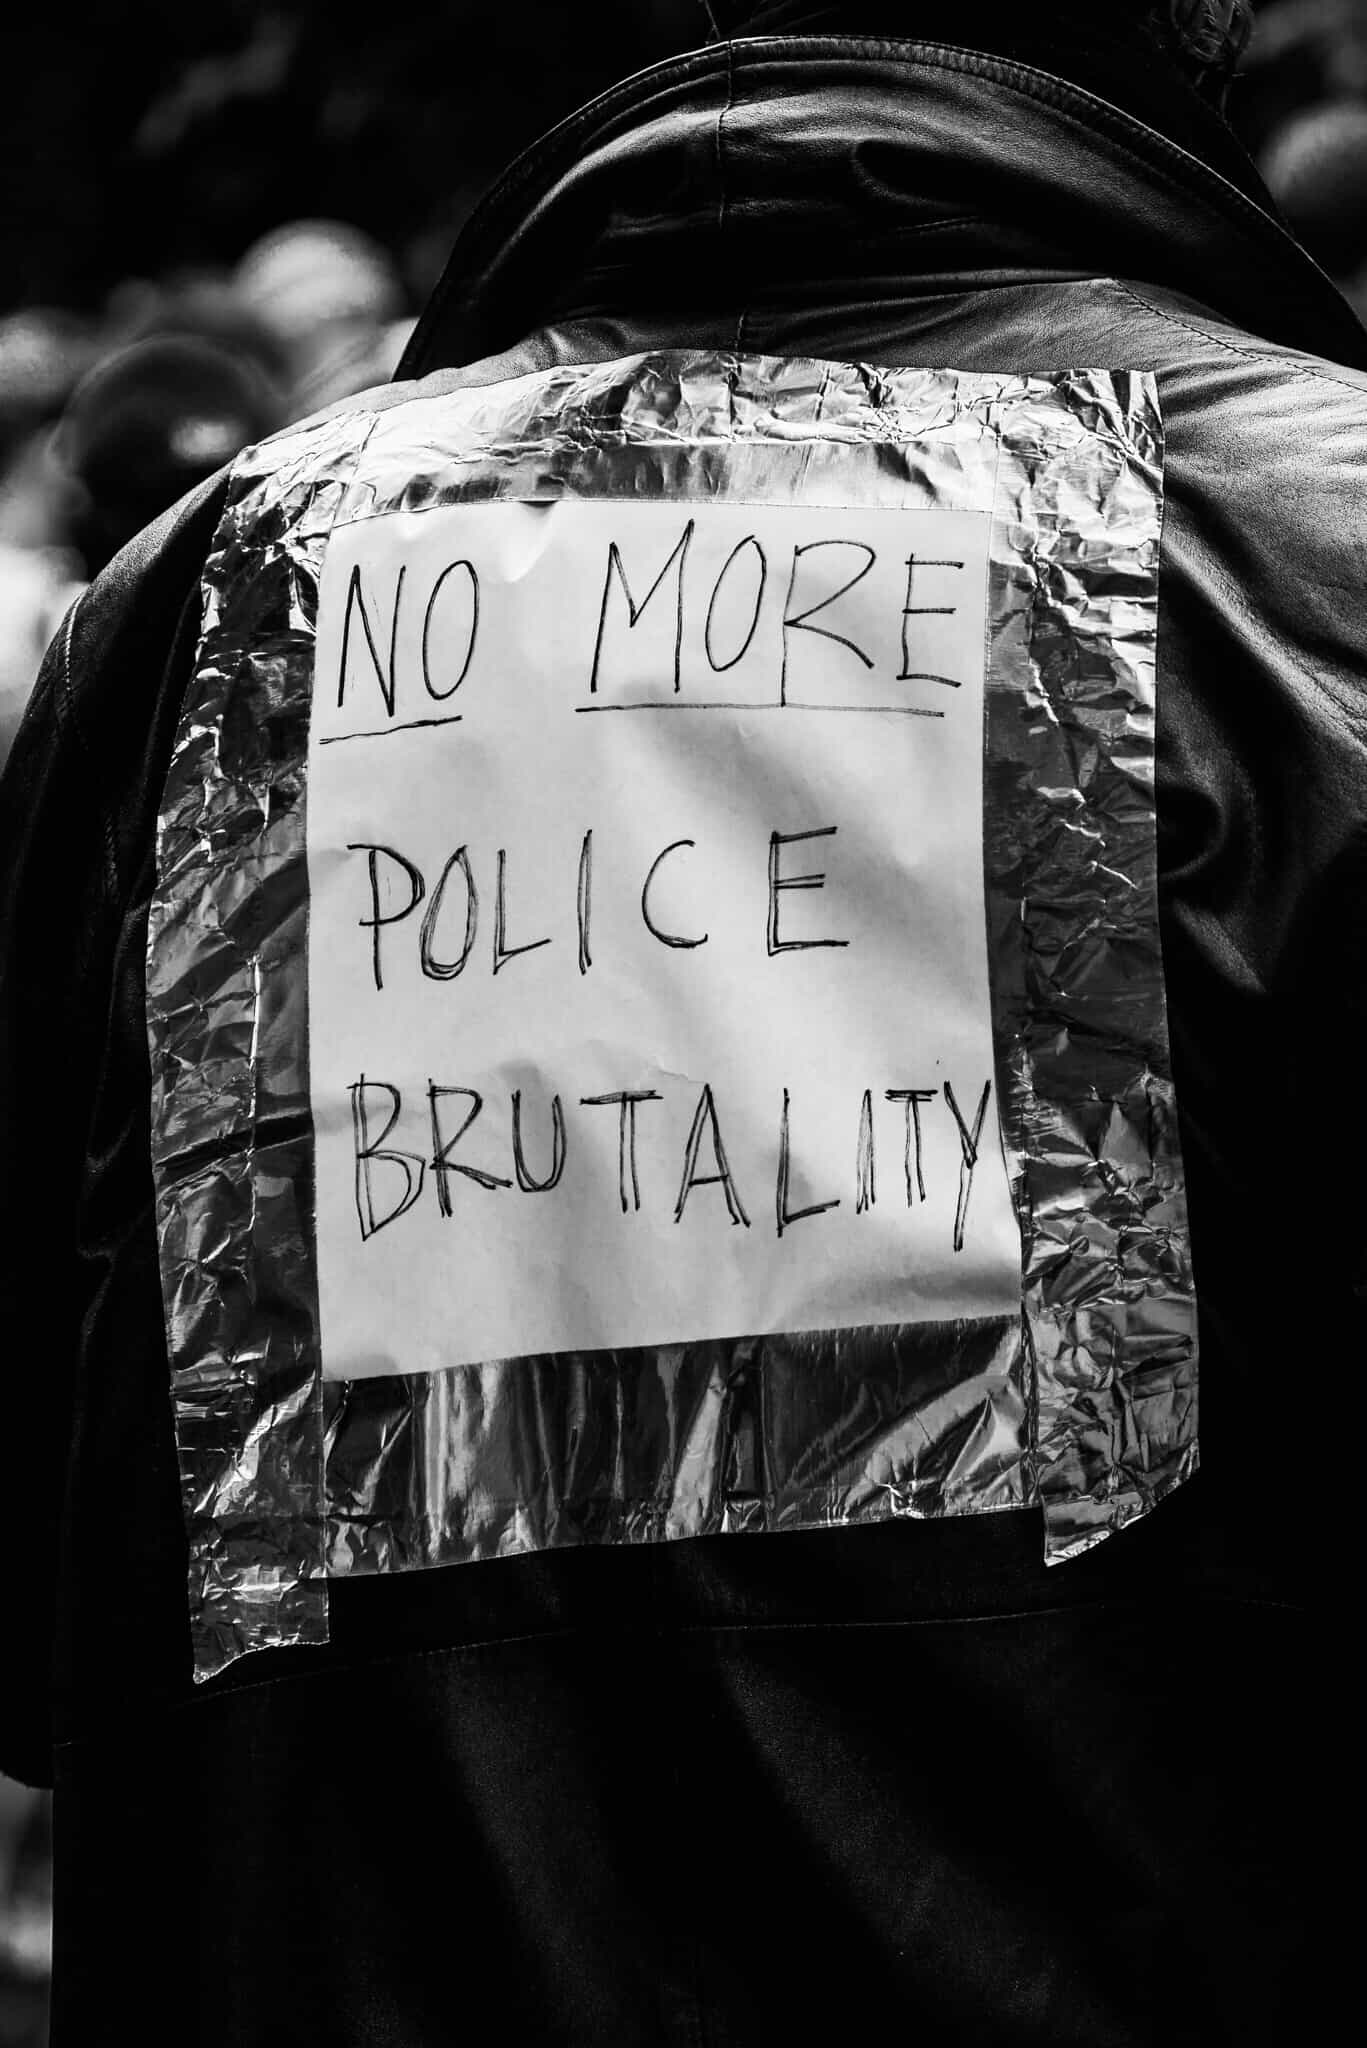 No More Police Brutality - Photo by Jason Hargrove